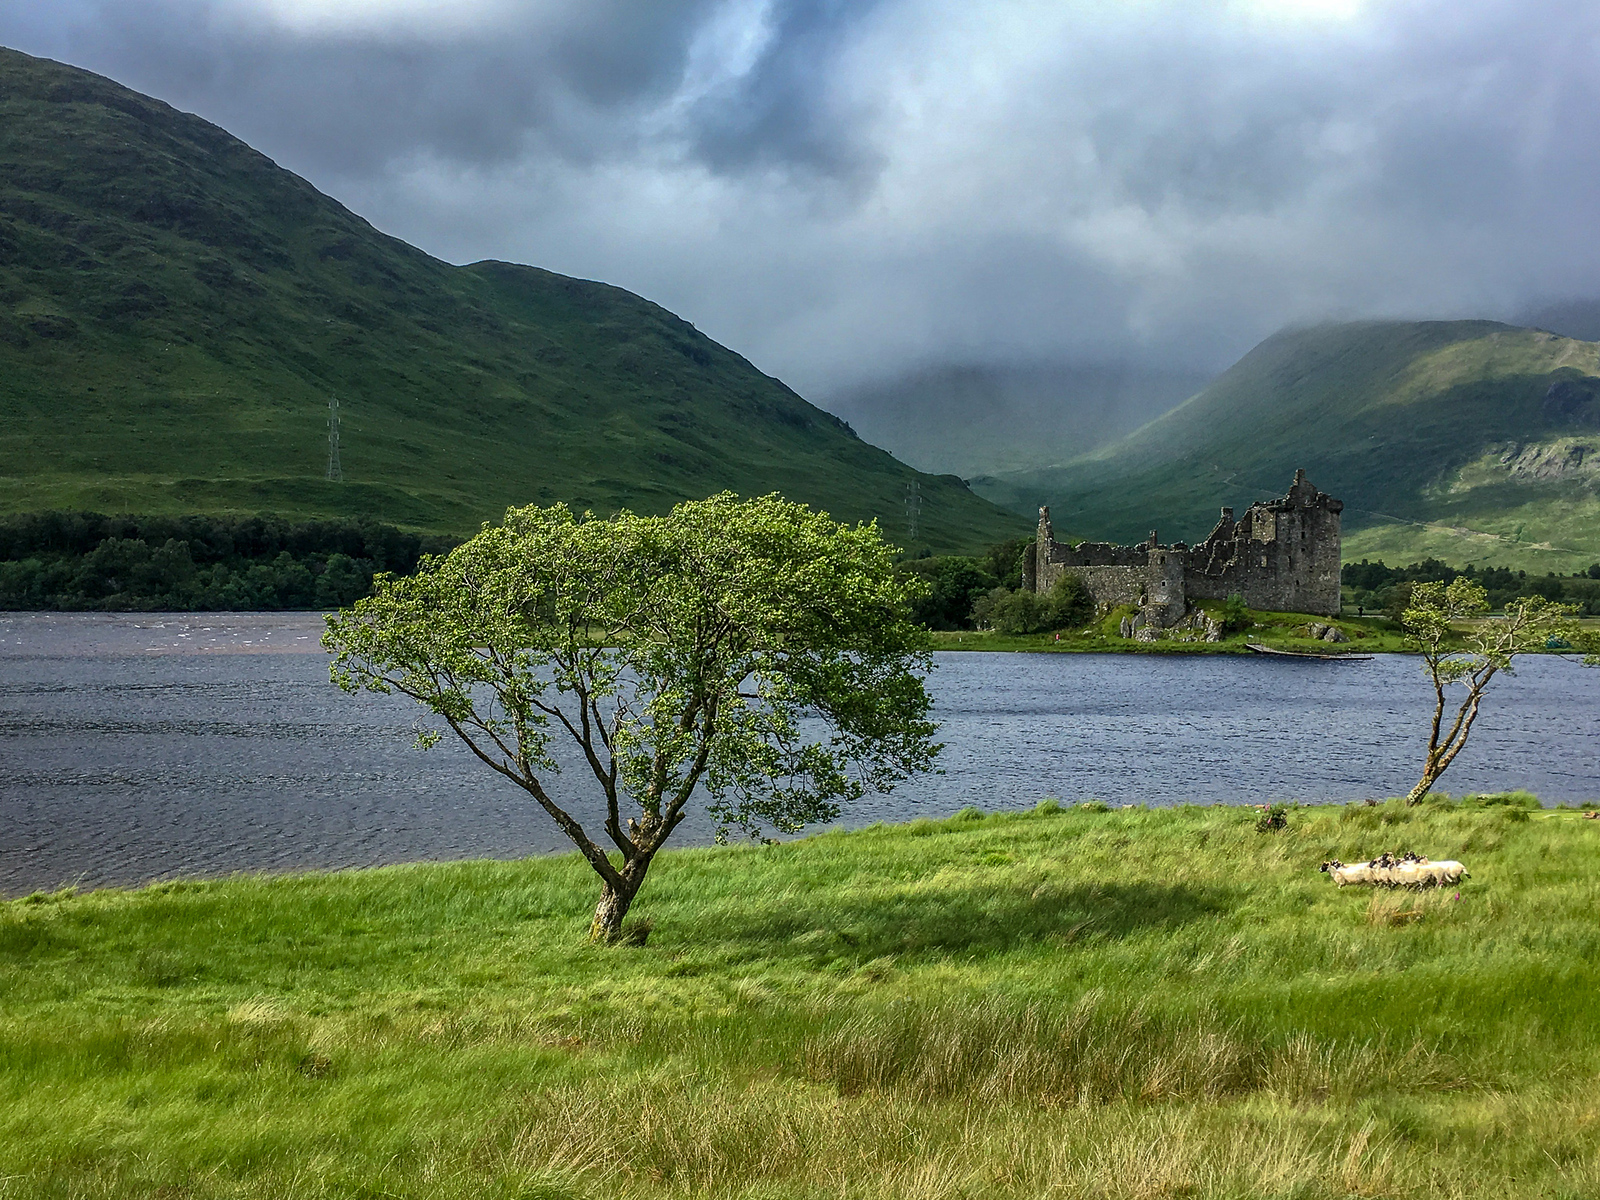 traveling to scotland? don't miss the castles!